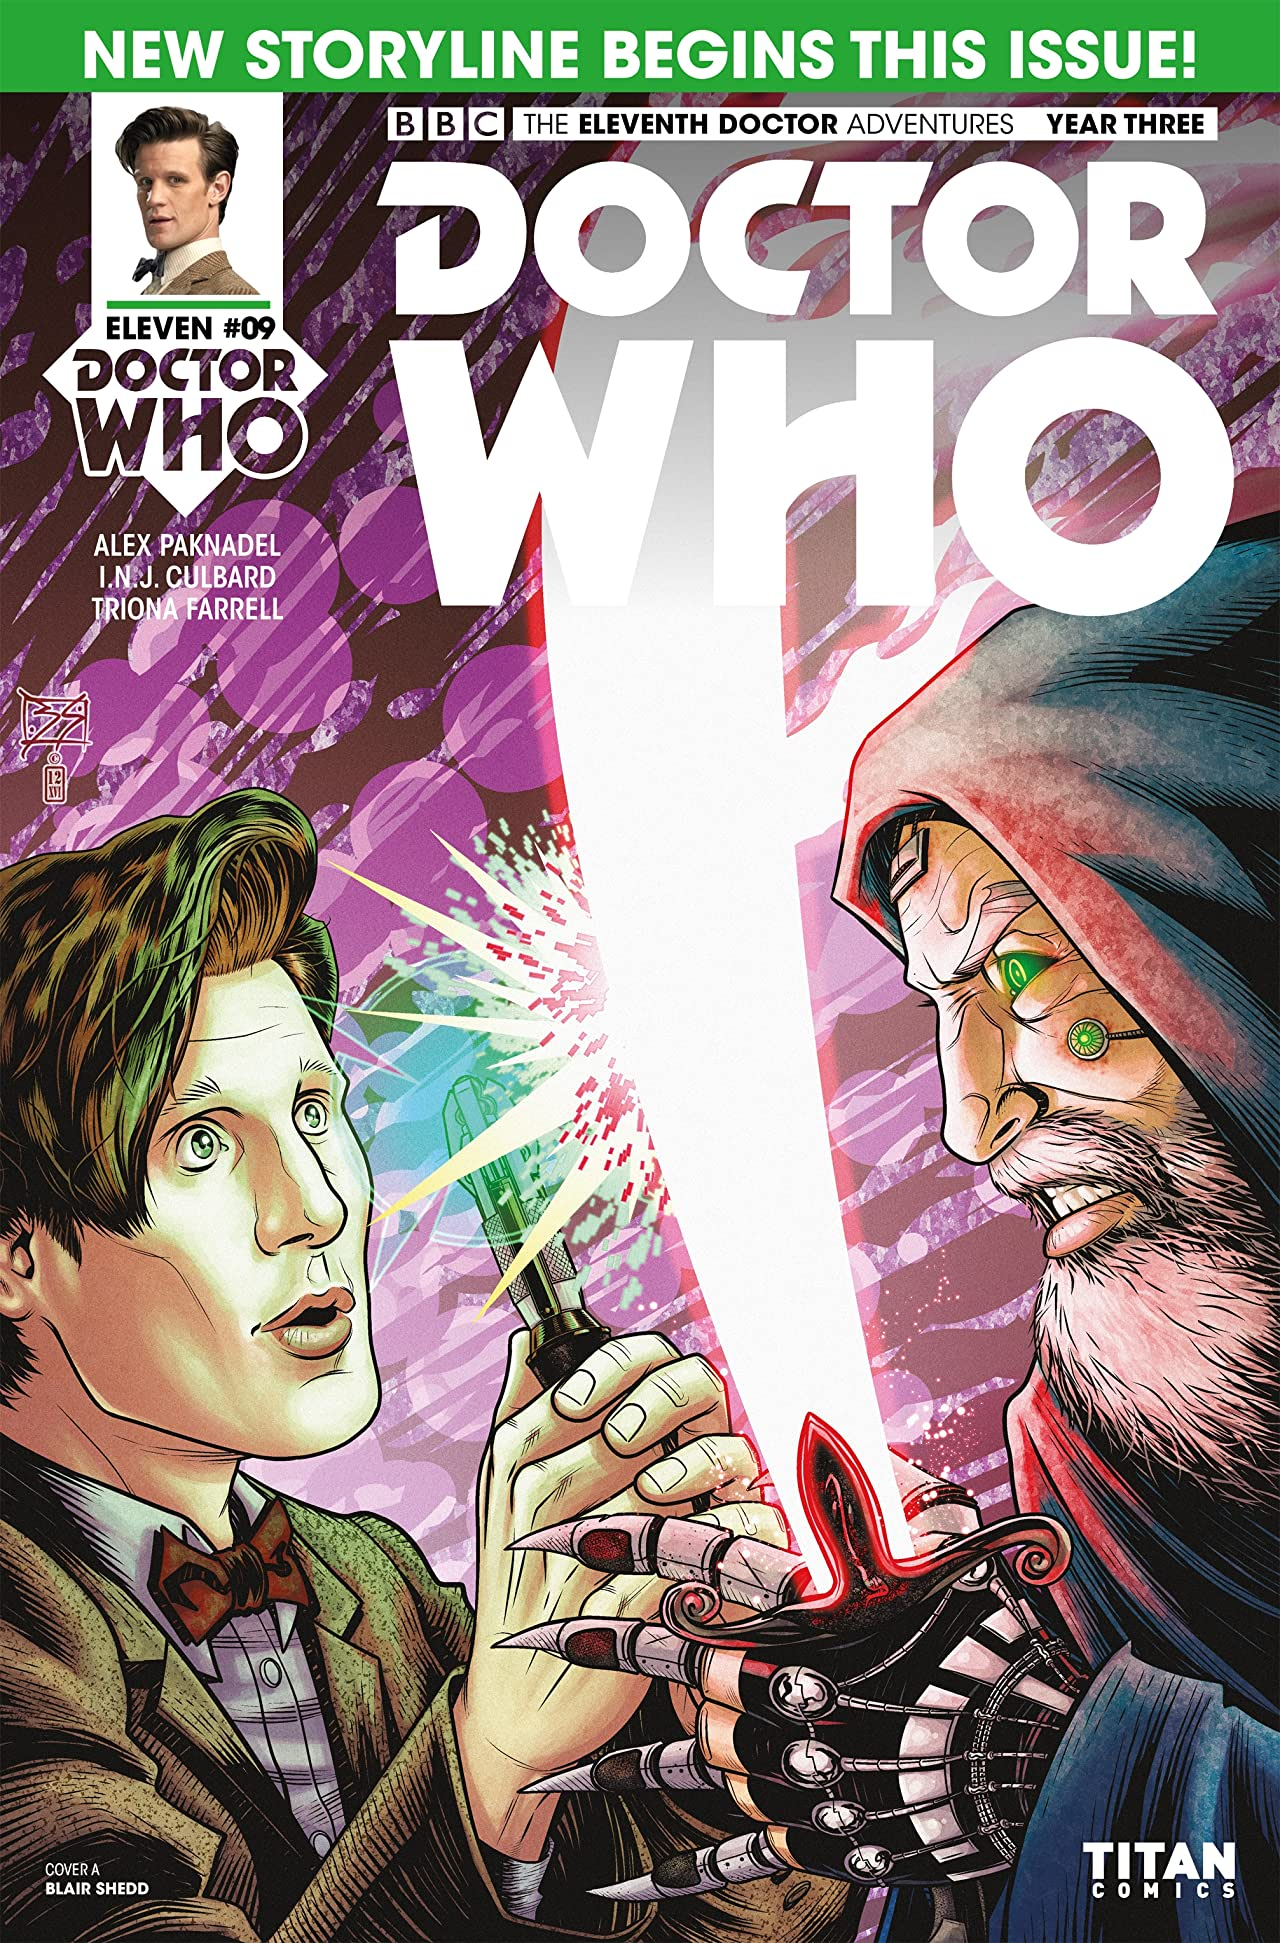 Doctor Who: The Eleventh Doctor #3.9